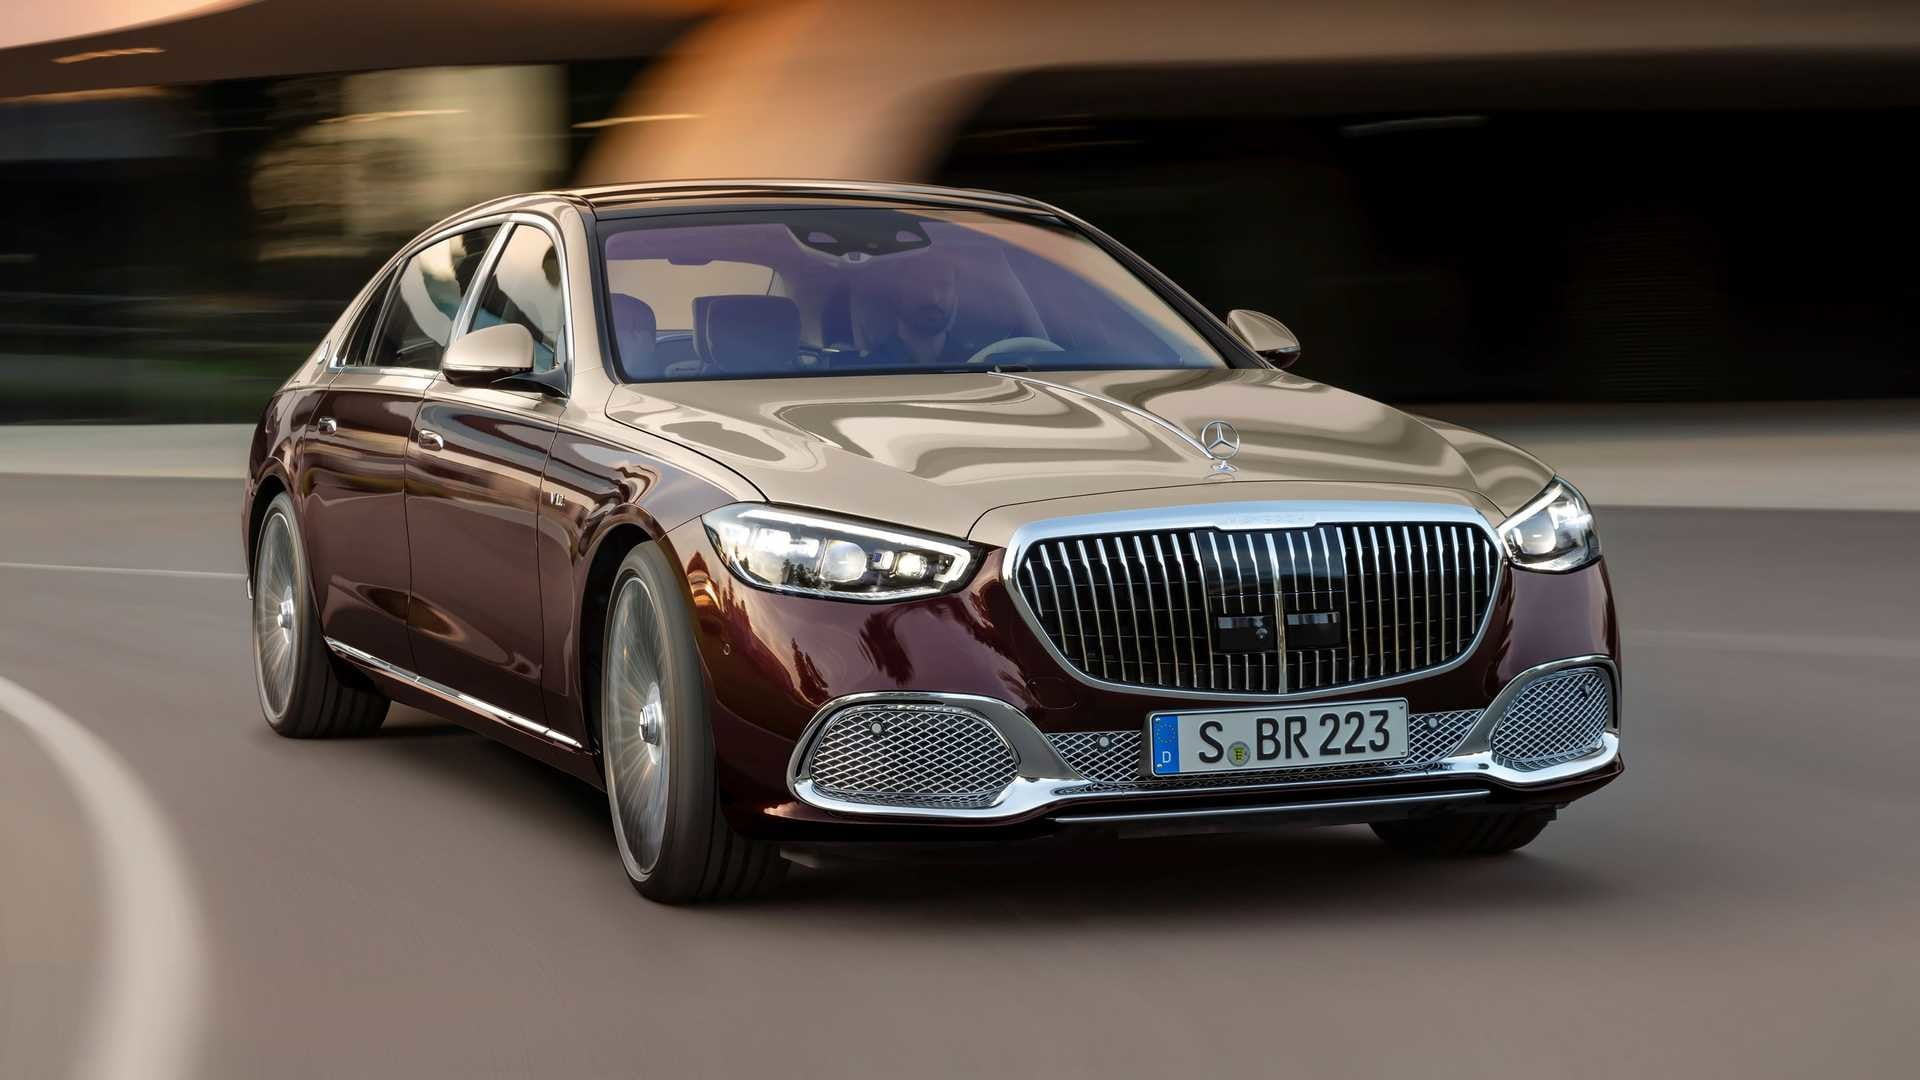 2022 Mercedes-Benz Maybach S680 front end